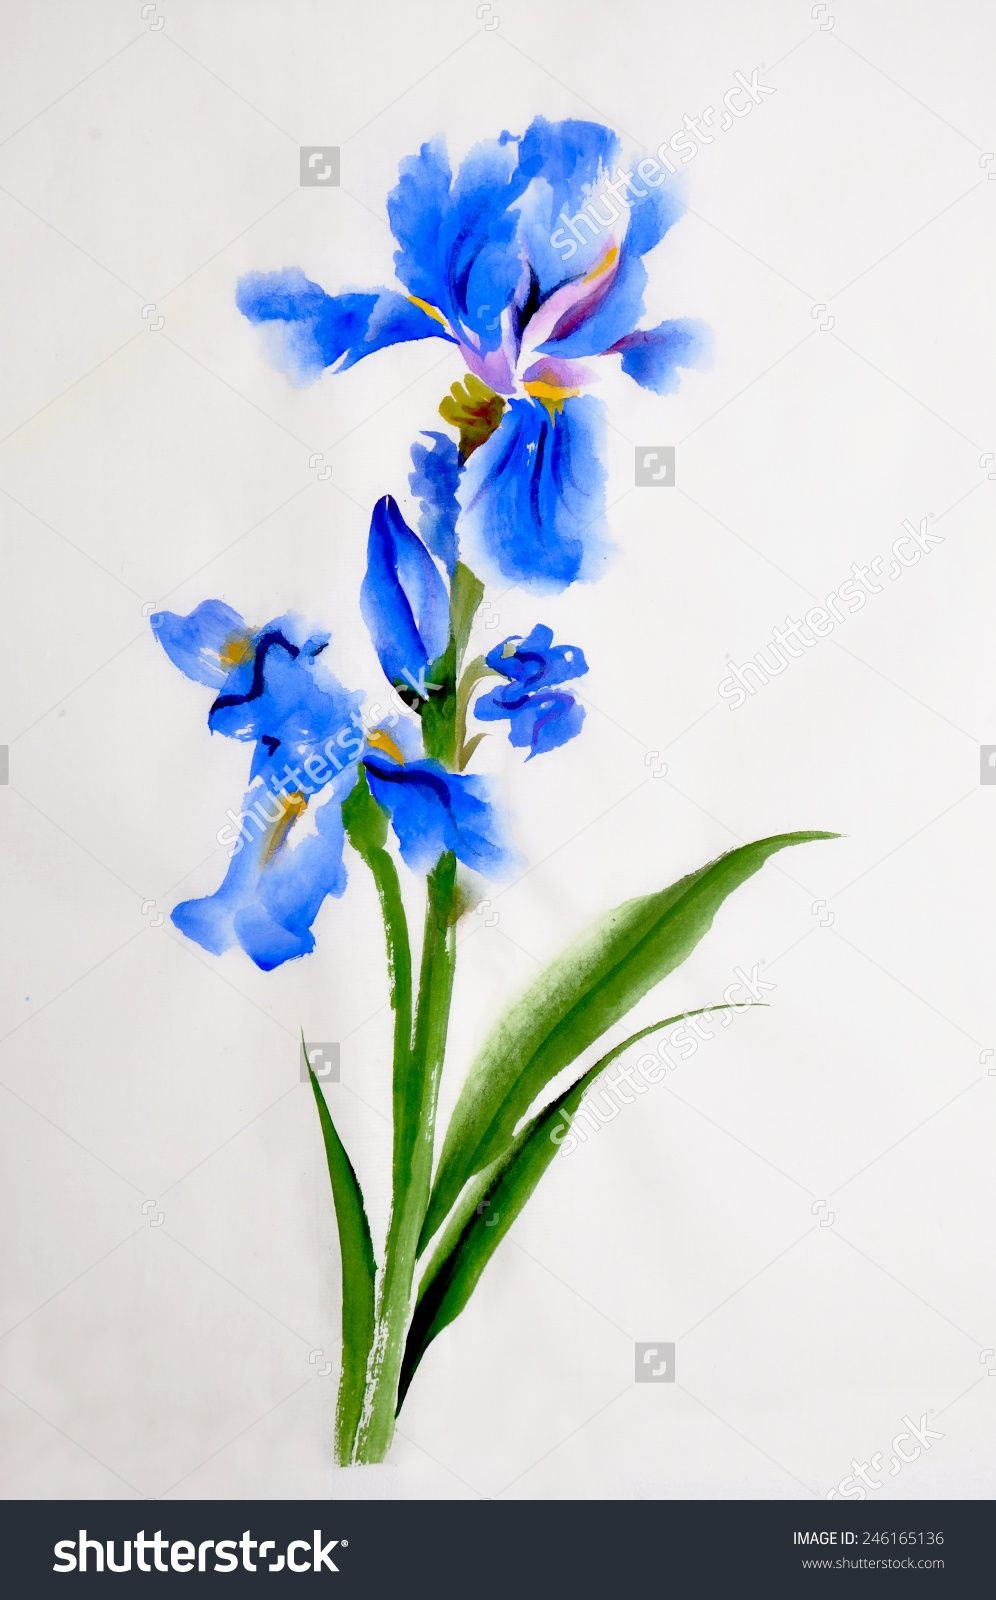 Stock Photo Blue Iris Flower Watercolor Painting On Rice Paper Chinese Style 246165136 Jpg 996 16 Watercolor Flowers Paintings Watercolor Flowers Iris Flowers